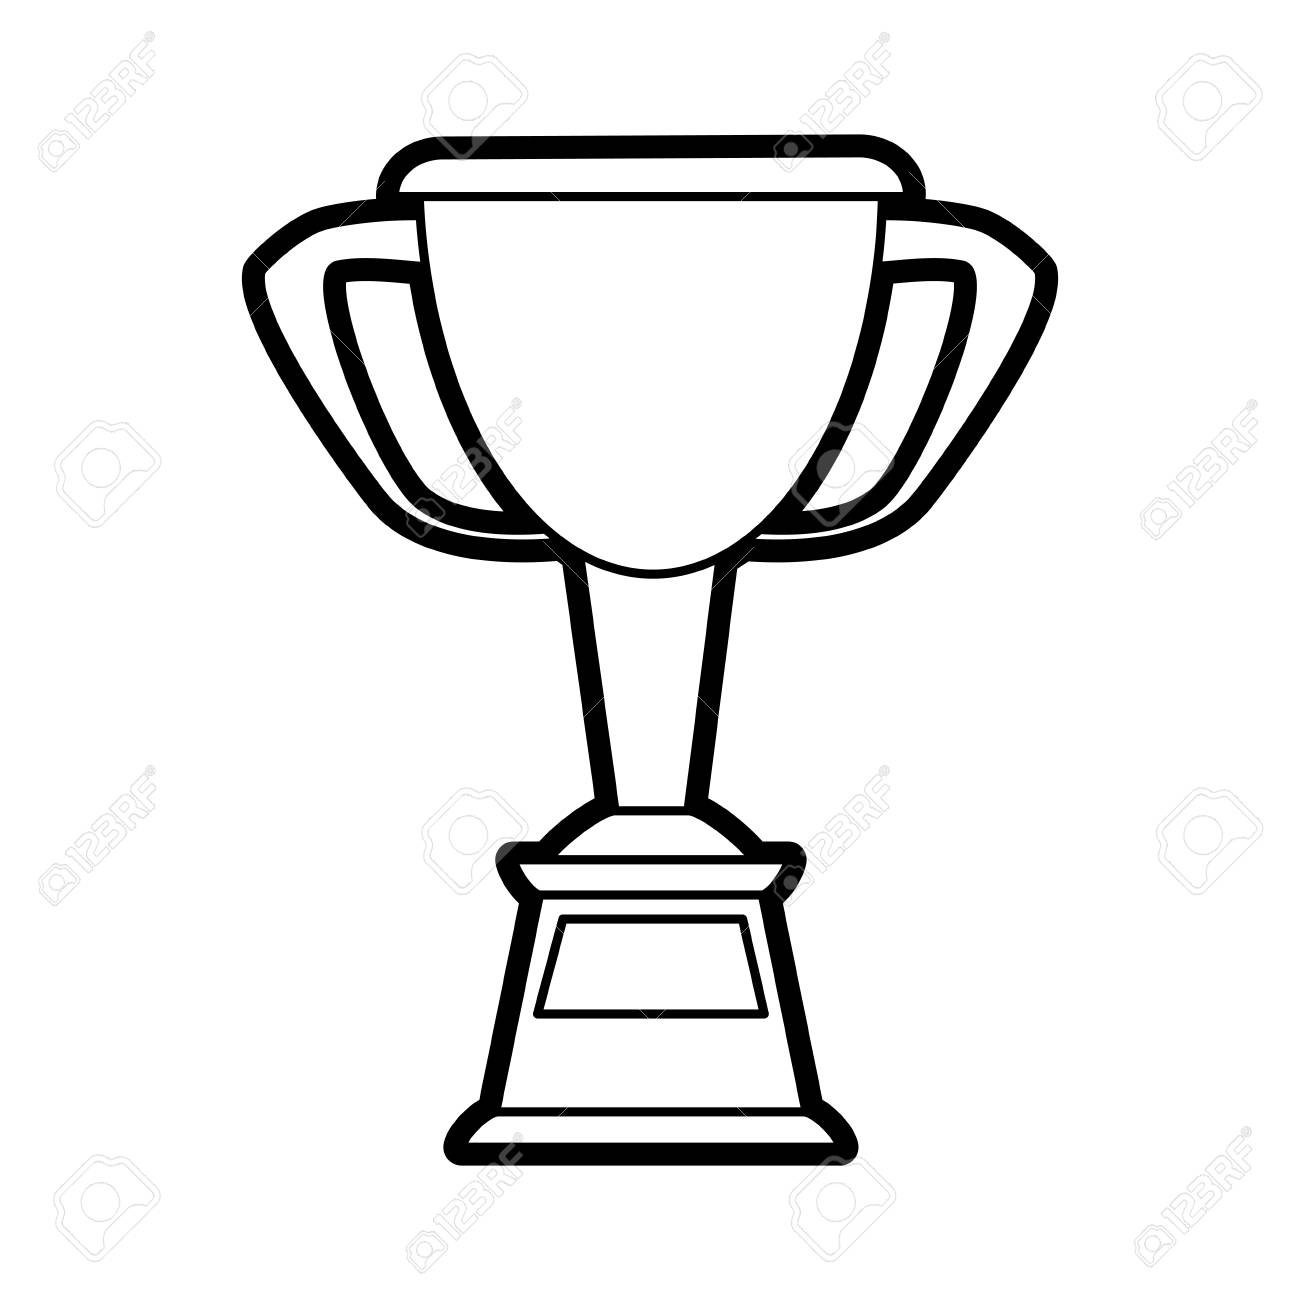 Winner trophy cup icon stock vector. Illustration of badge - 139724335